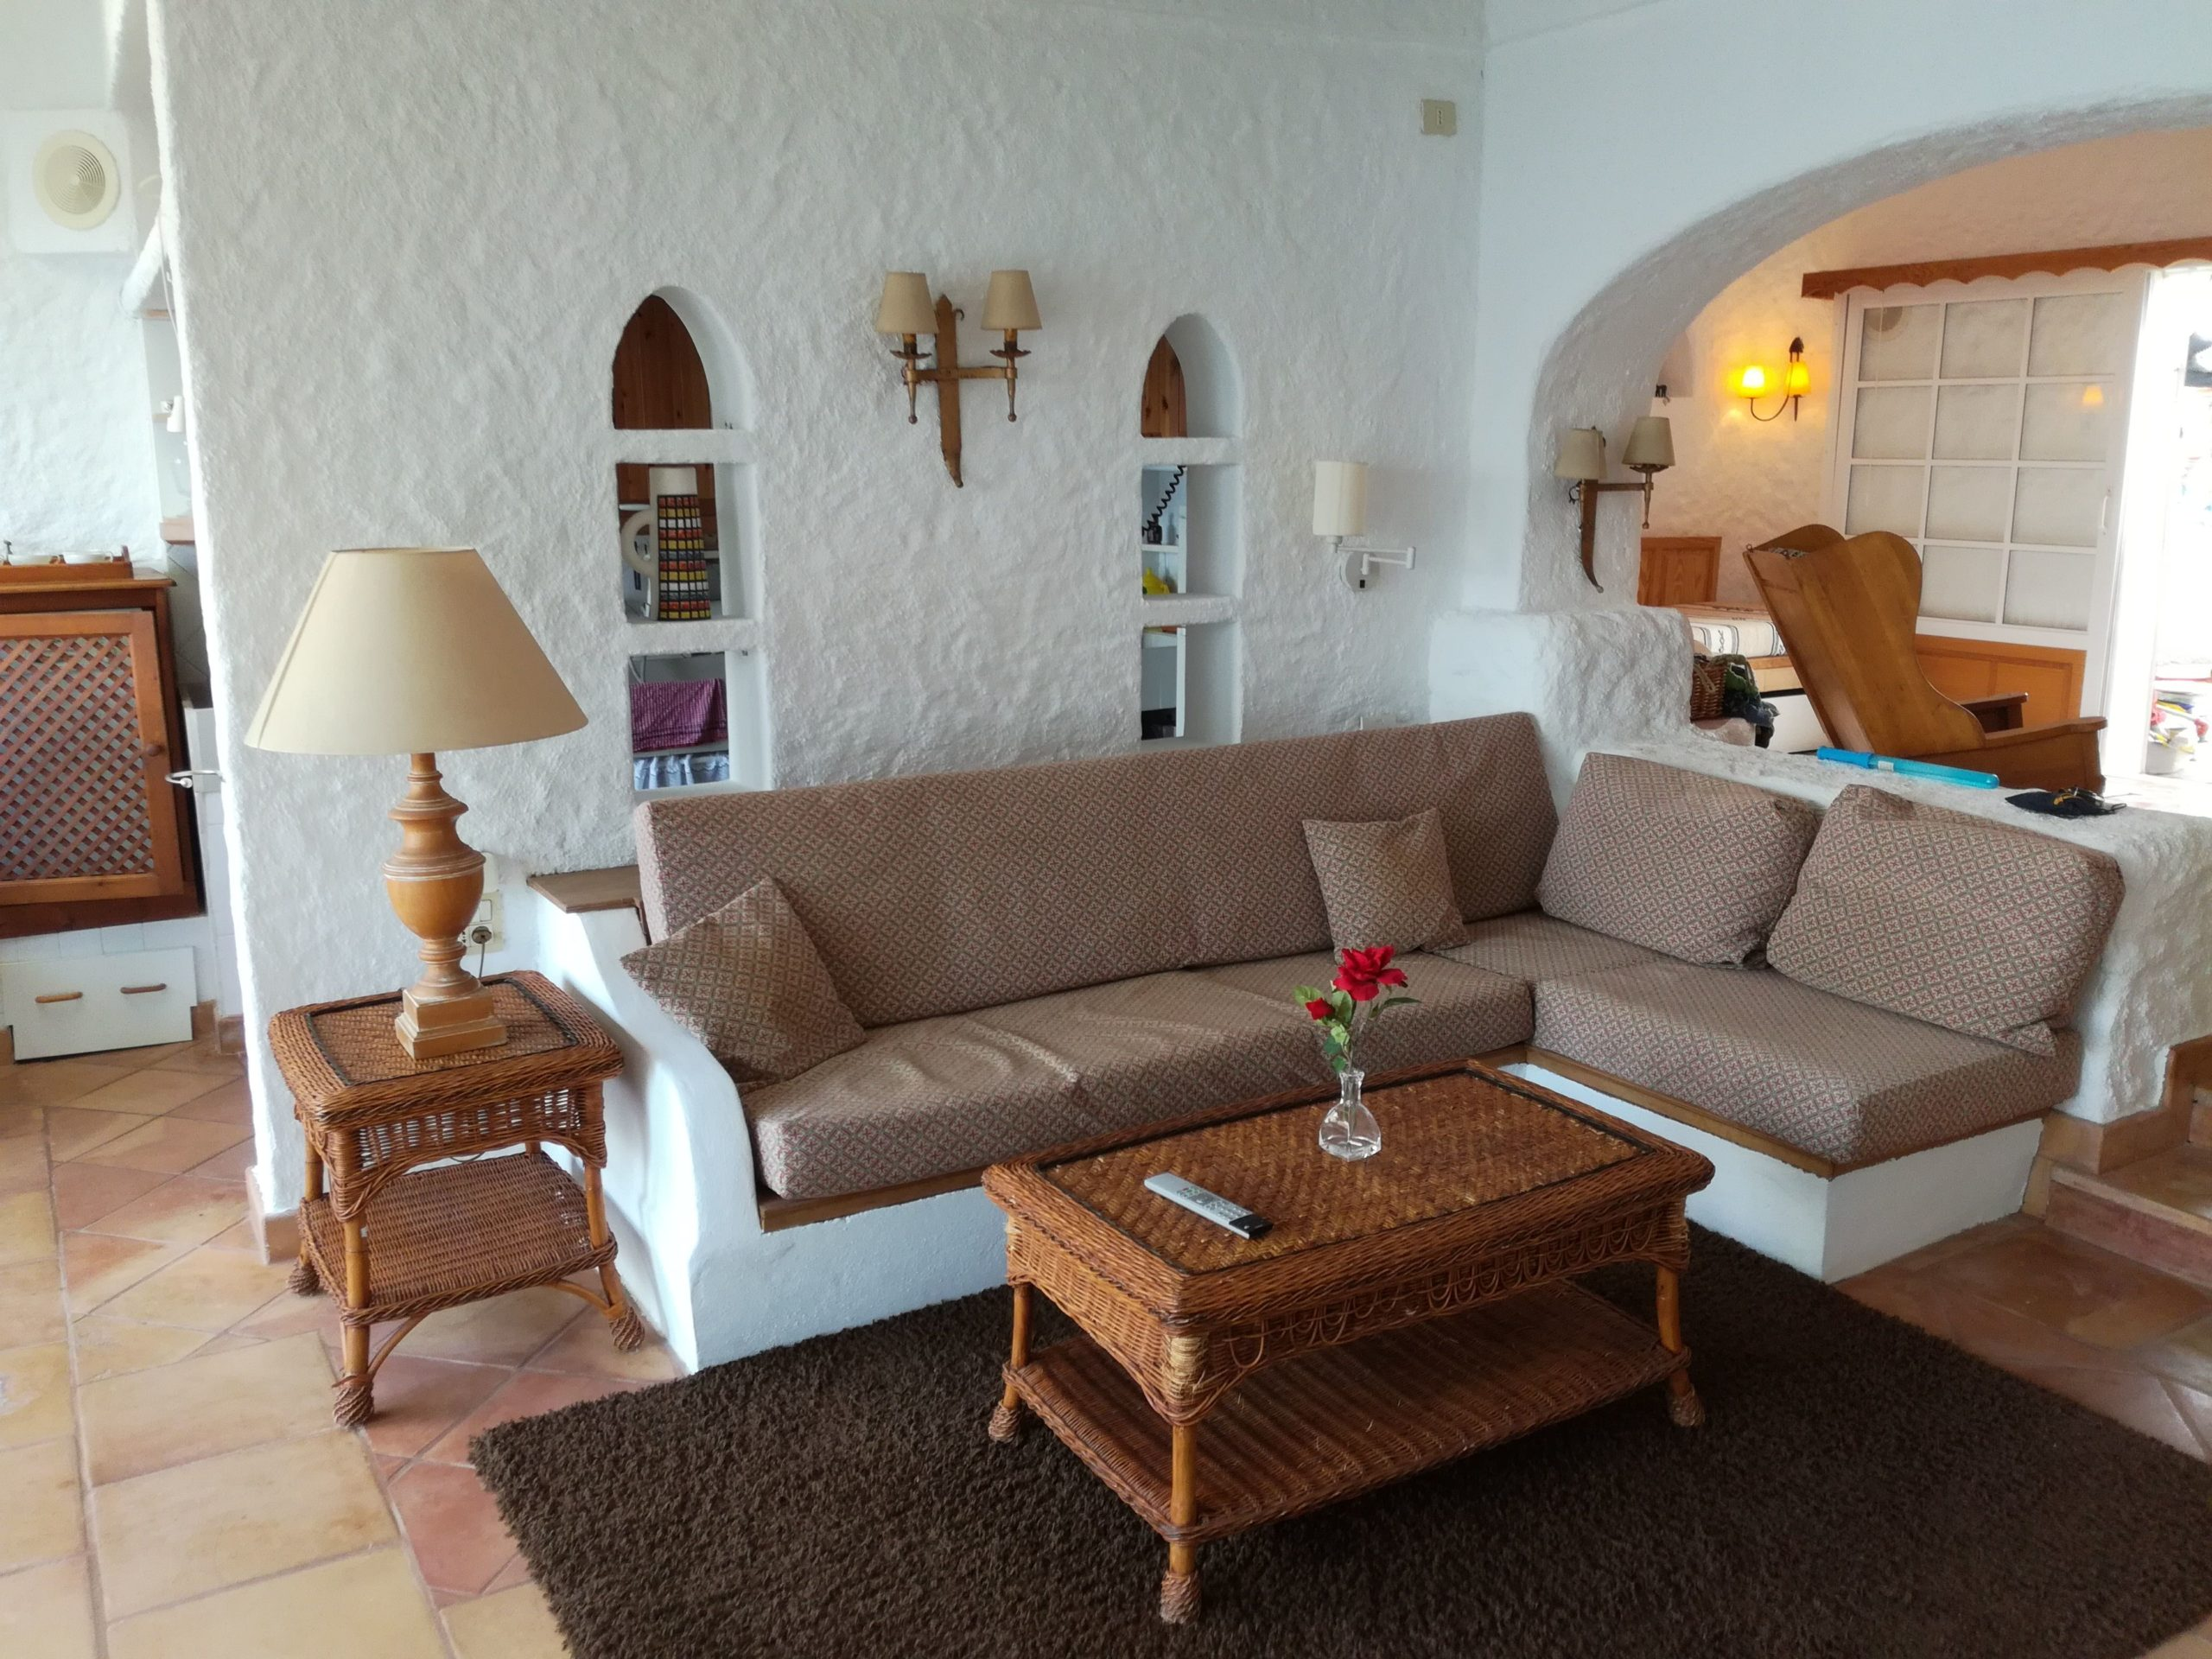 Holiday-Home-Directly-on-the-Sea-Tenerife-4